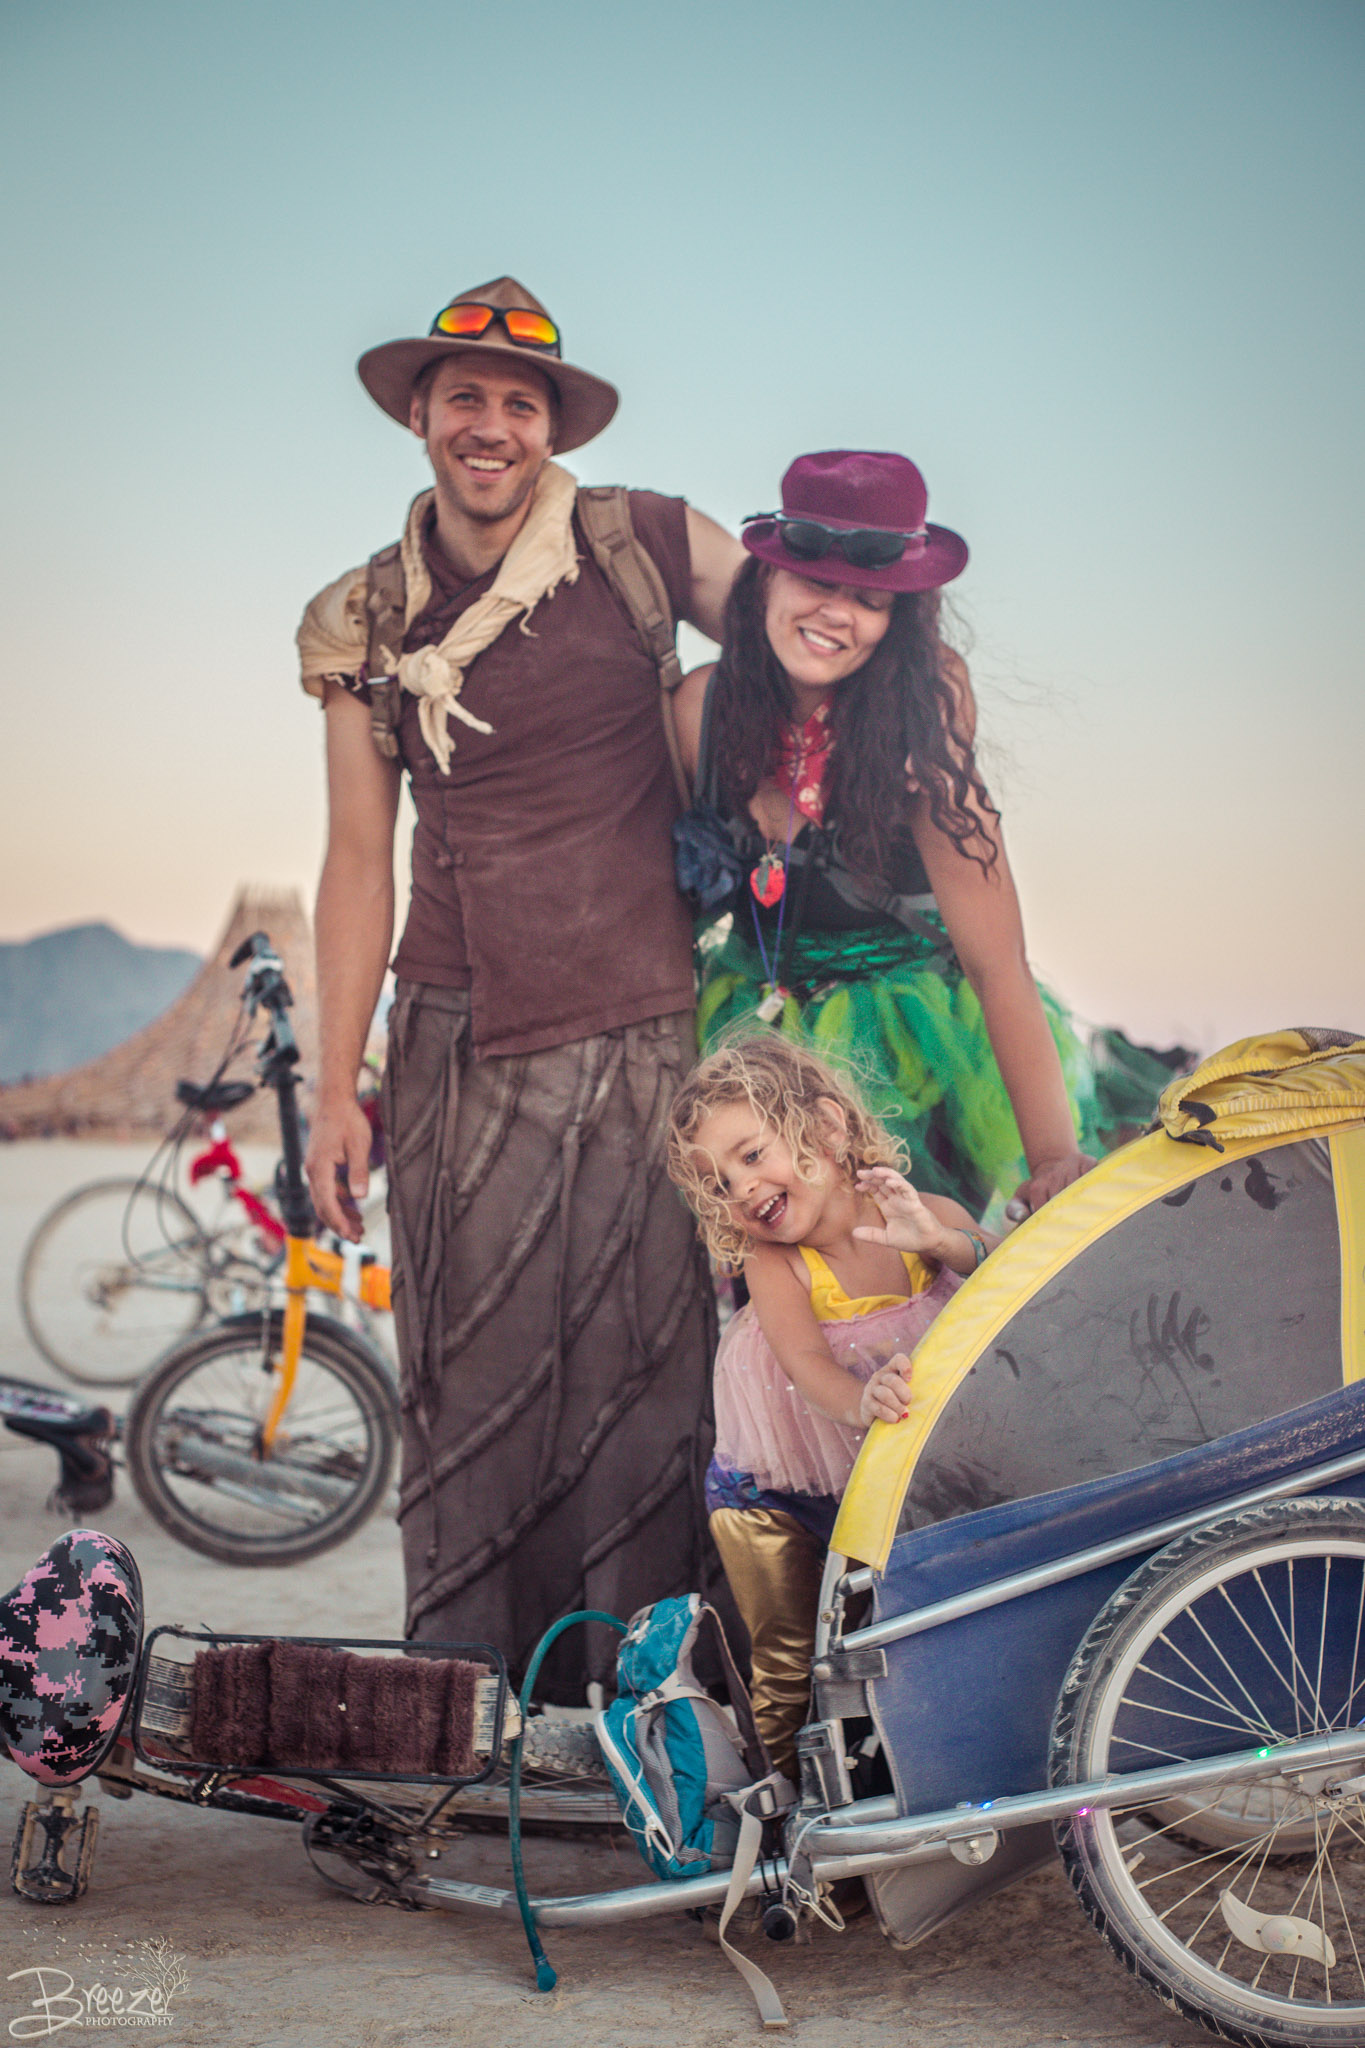 Brie'Ana Breeze Photography & Media - Burning Man 2018-3602.jpg